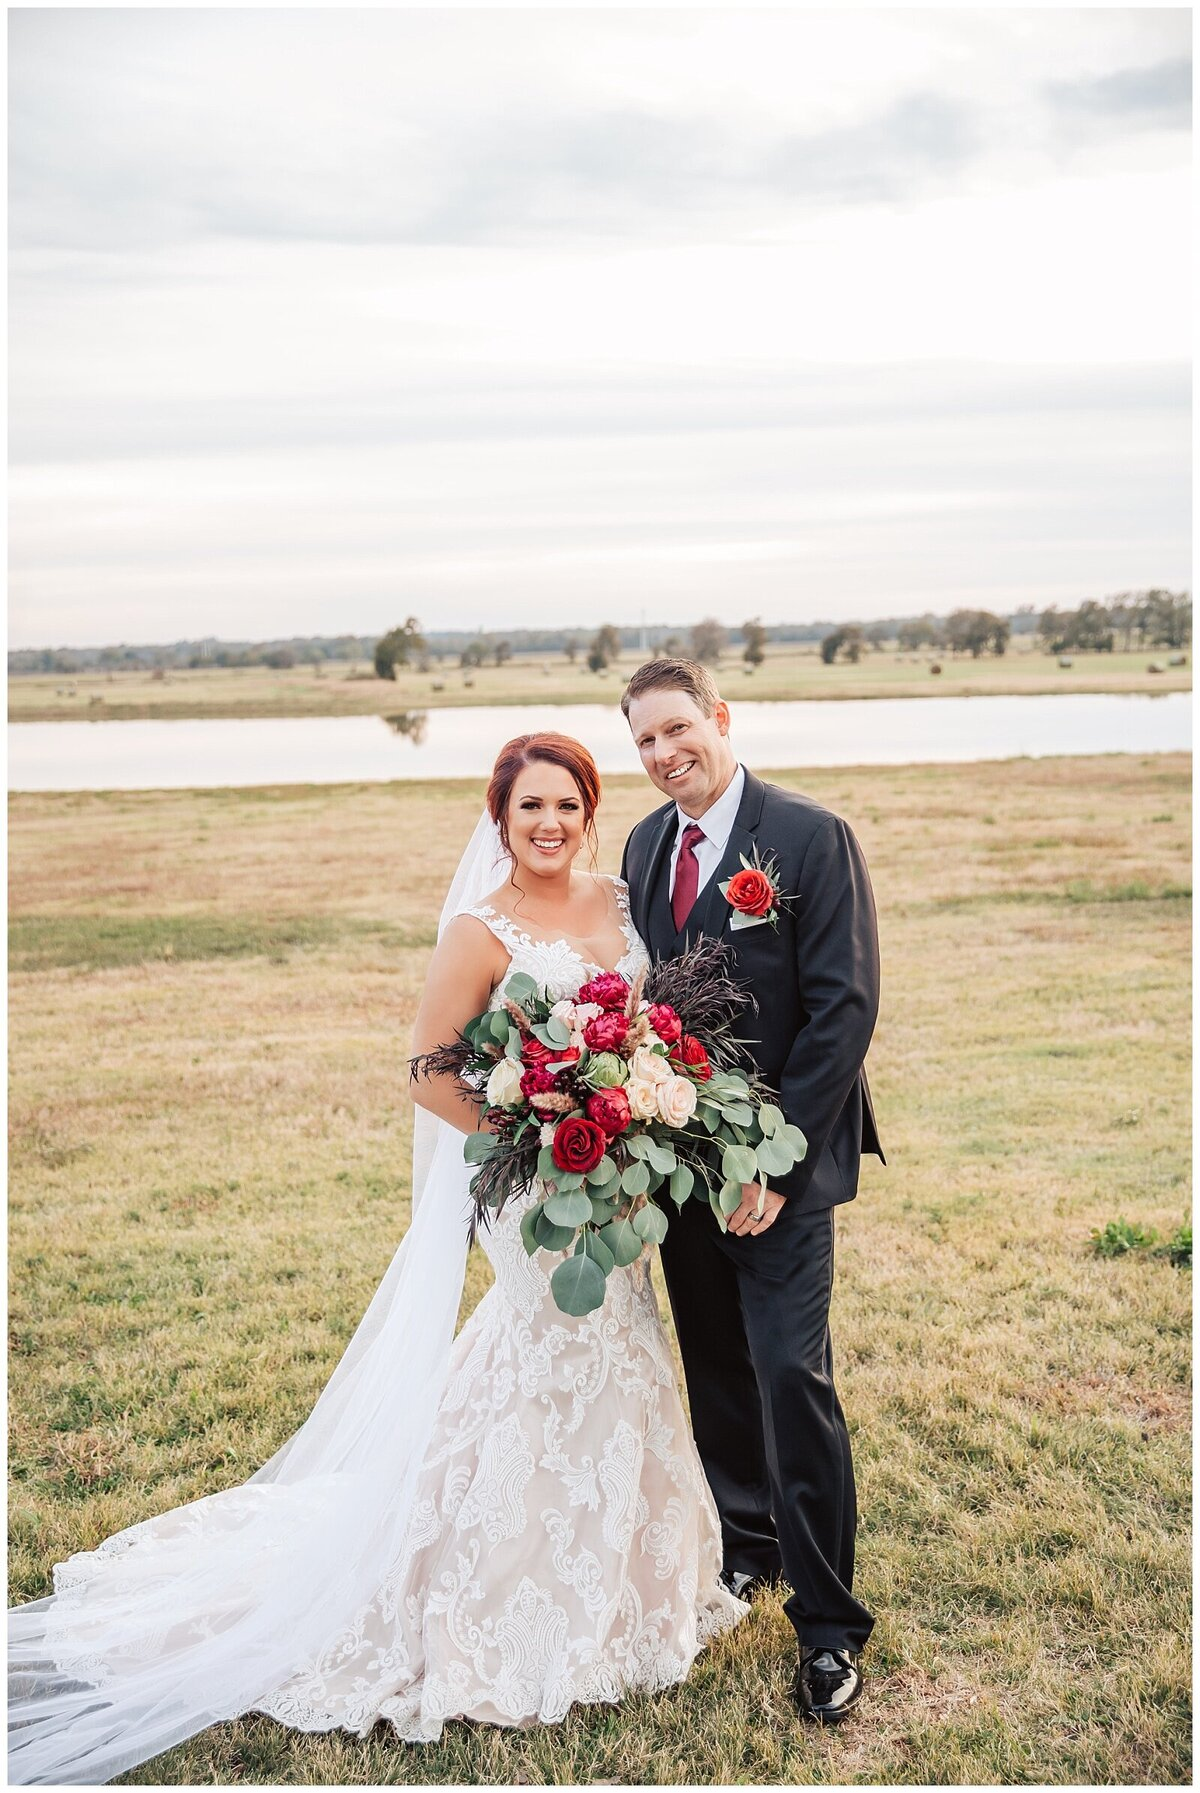 Rustic Burgundy and Blush Indoor Outdoor Wedding at Emery's Buffalo Creek - Houston Wedding Venue_0685